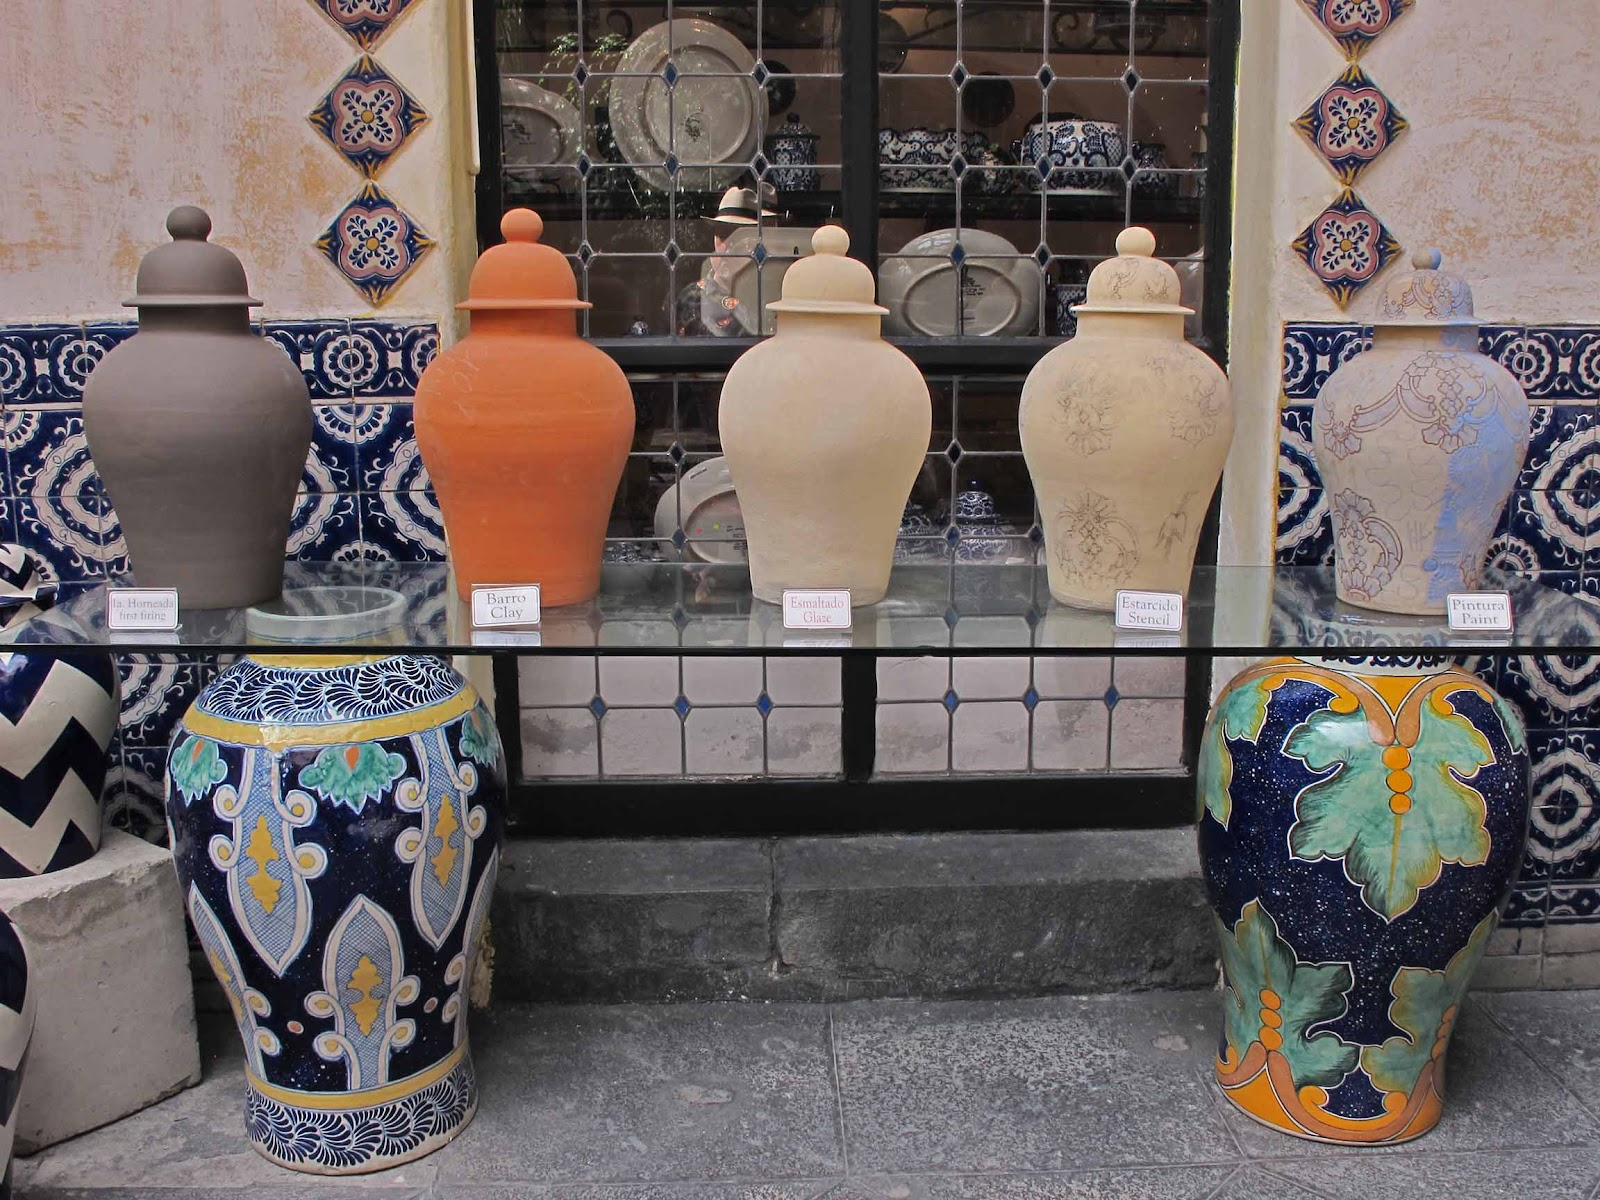 The Oldest Certified, Continuously Operating Workshop Is In Uriarte,  Founded In 1824. Another Certified Workshop, Talavera De La Reina, ...